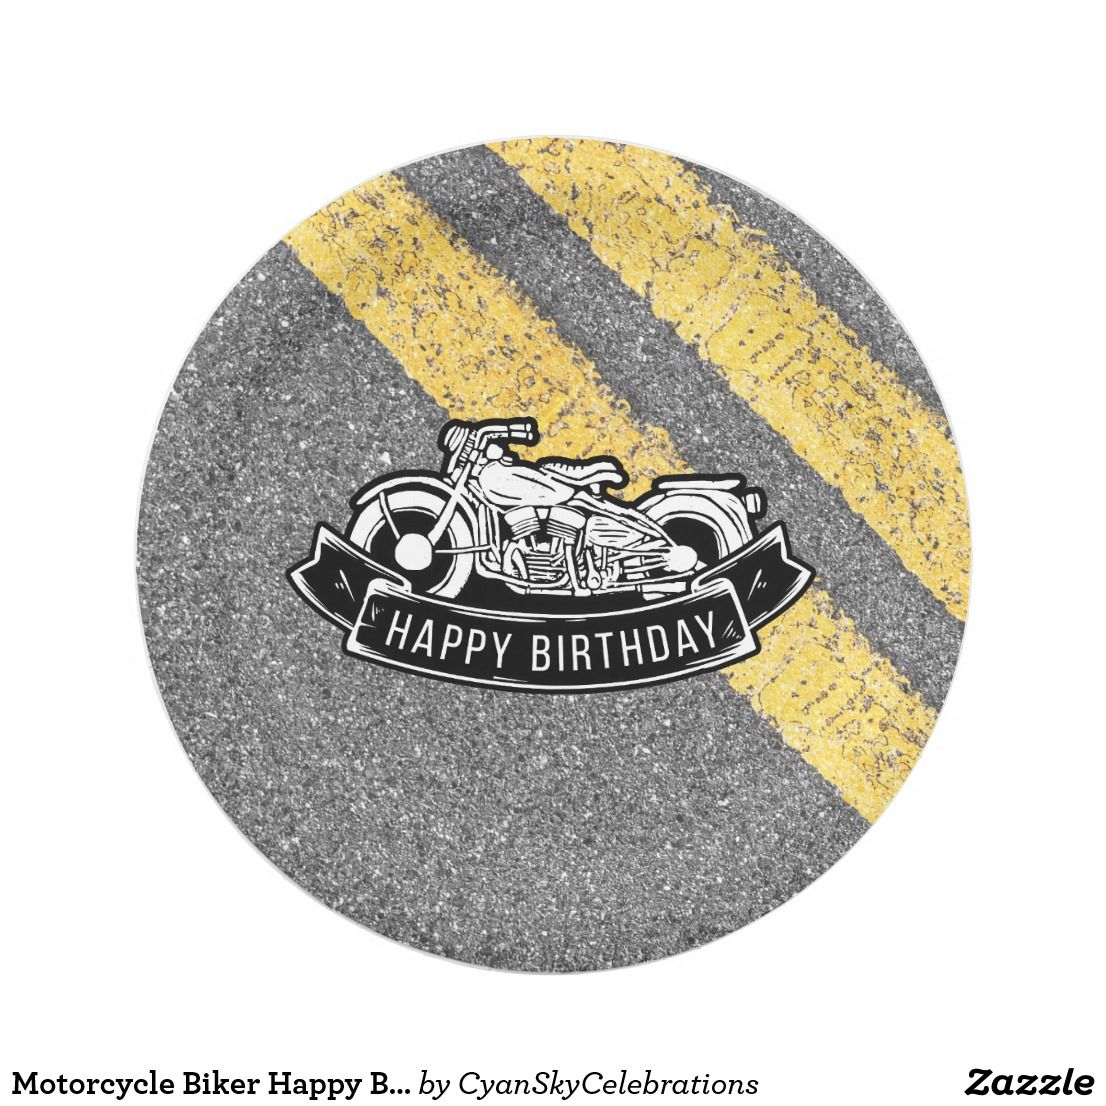 Motorcycle Biker Happy Birthday Party Serving Paper Plate  sc 1 st  Pinterest & Motorcycle Biker Happy Birthday Party Serving Paper Plate | Happy ...